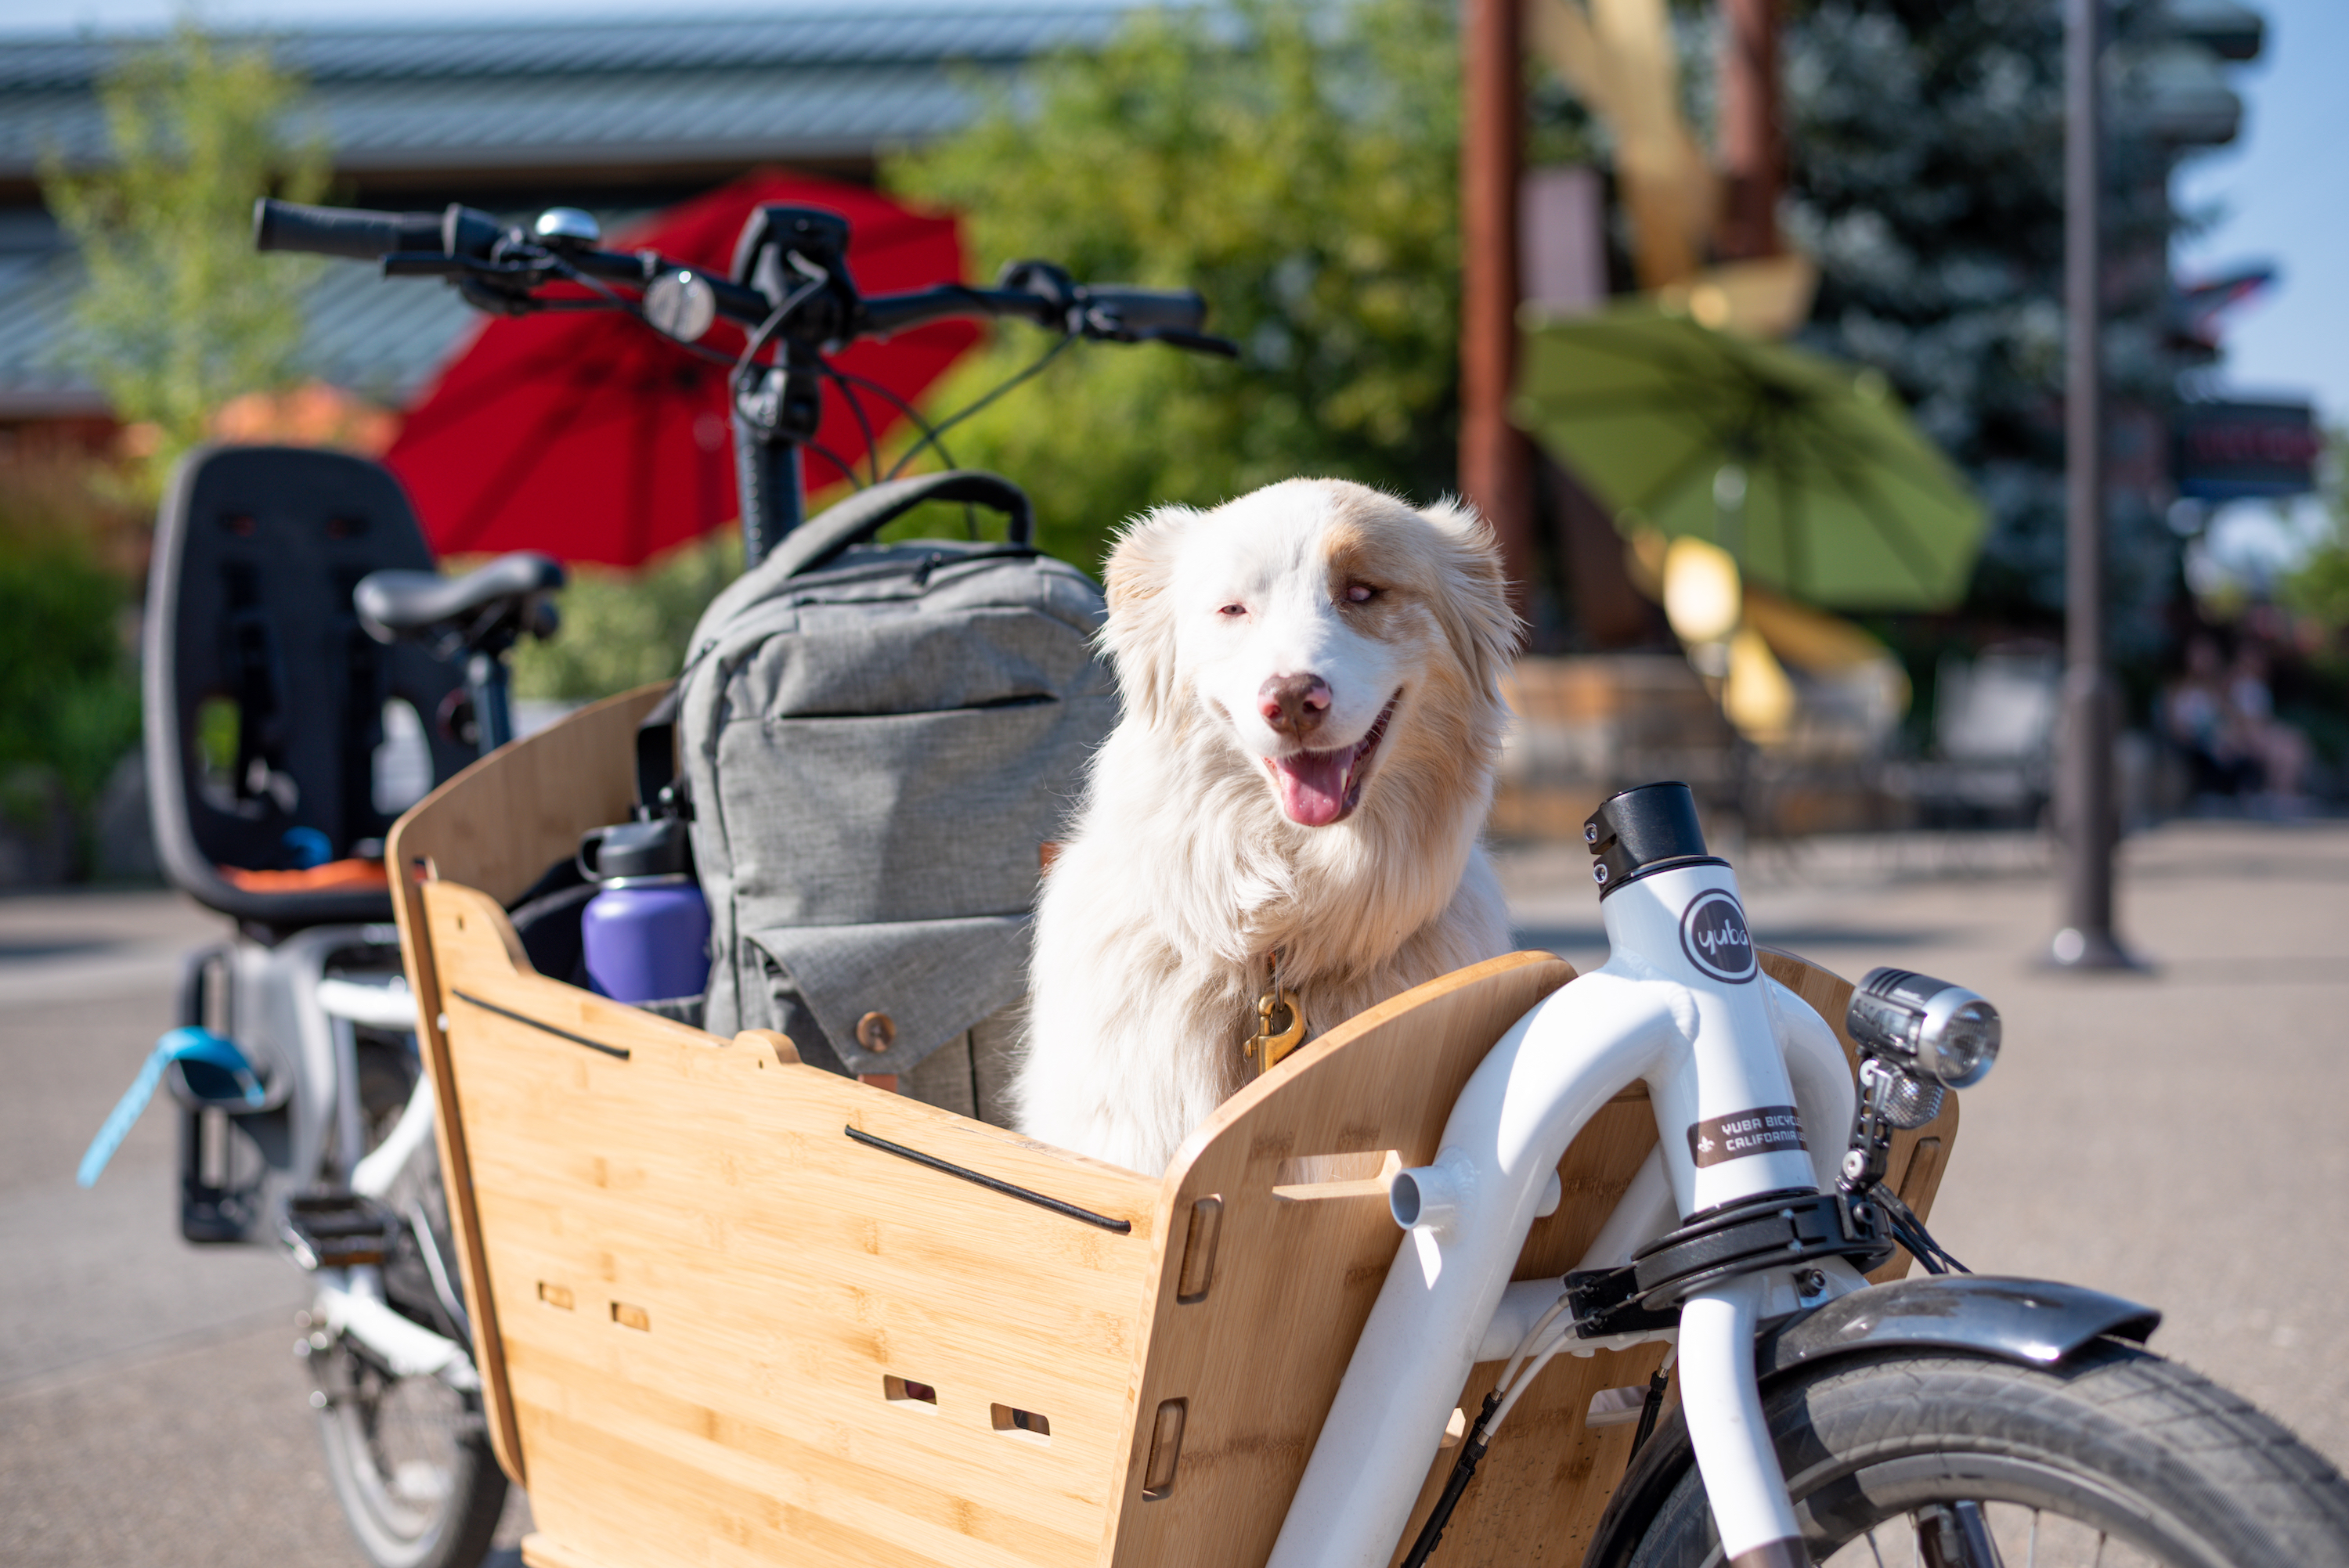 A Happy Dog Goes for a ride in the Yuba Cargo Bike